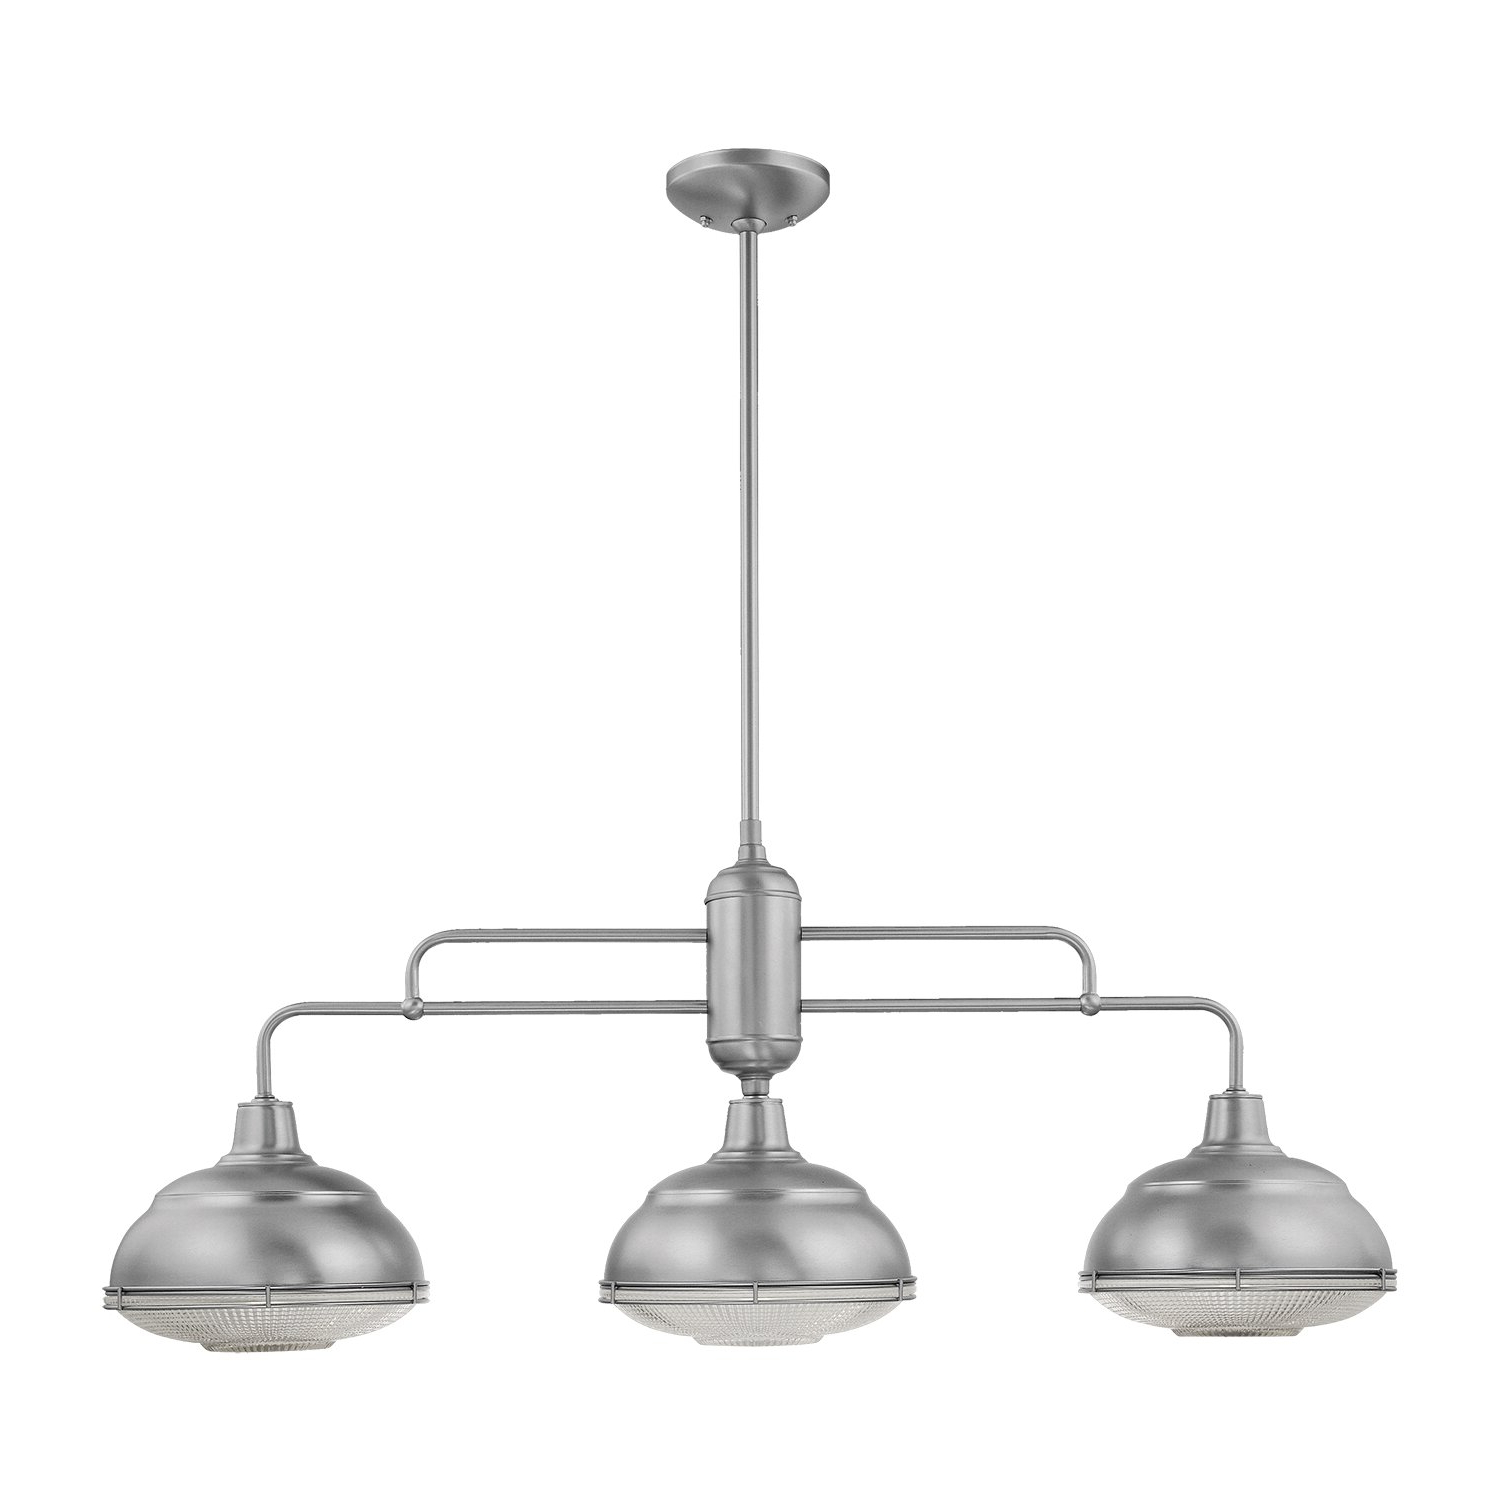 Popular Bruges 3 Light Kitchen Island Dome Pendant With Fredela 3 Light Kitchen Island Pendants (Gallery 18 of 20)